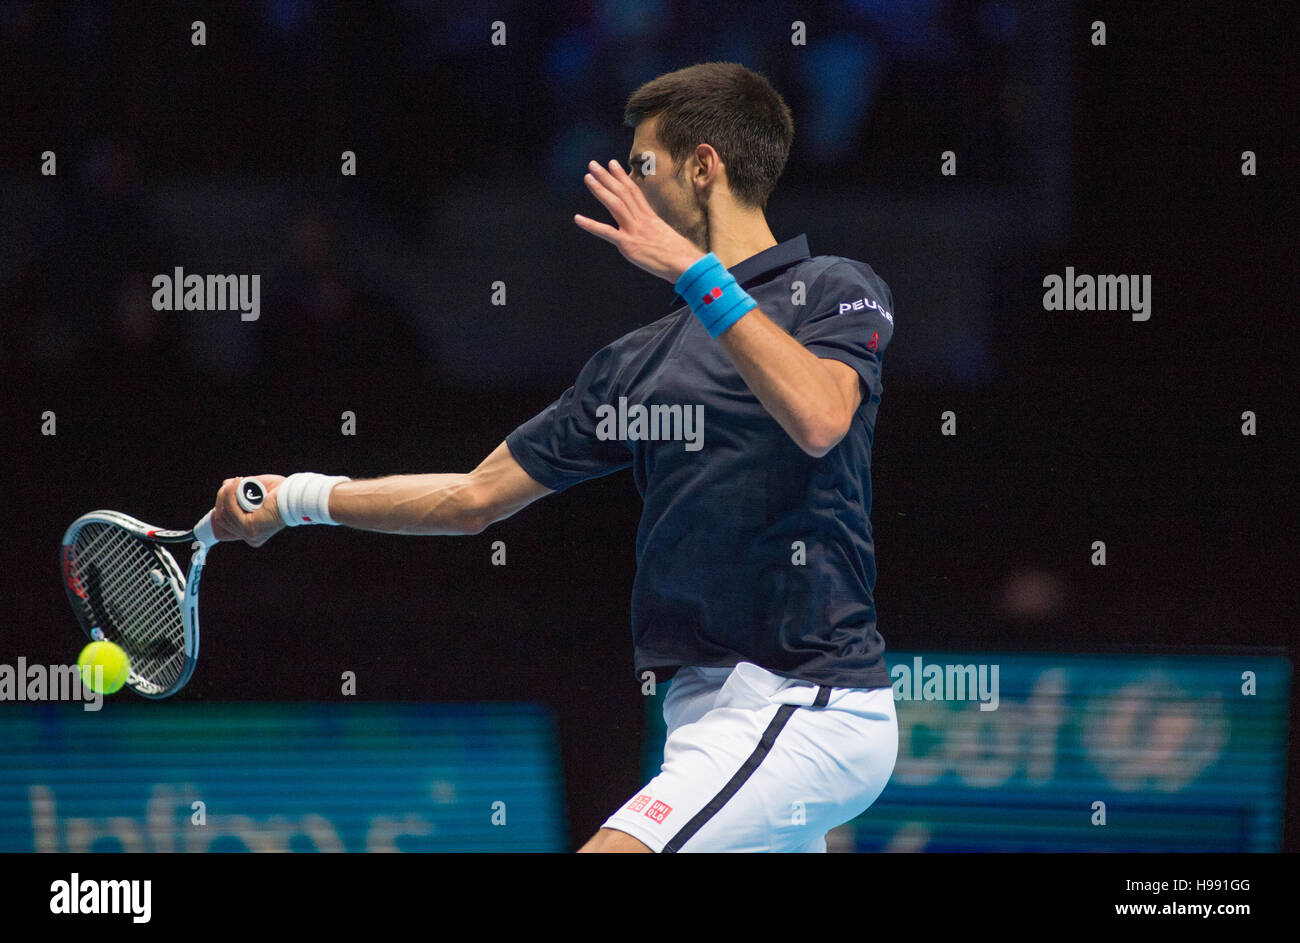 The O2, London, UK. 20th November, 2016. Day 8 singles final match, Novak Djokovic (SRB) in action against Andy - Stock Image